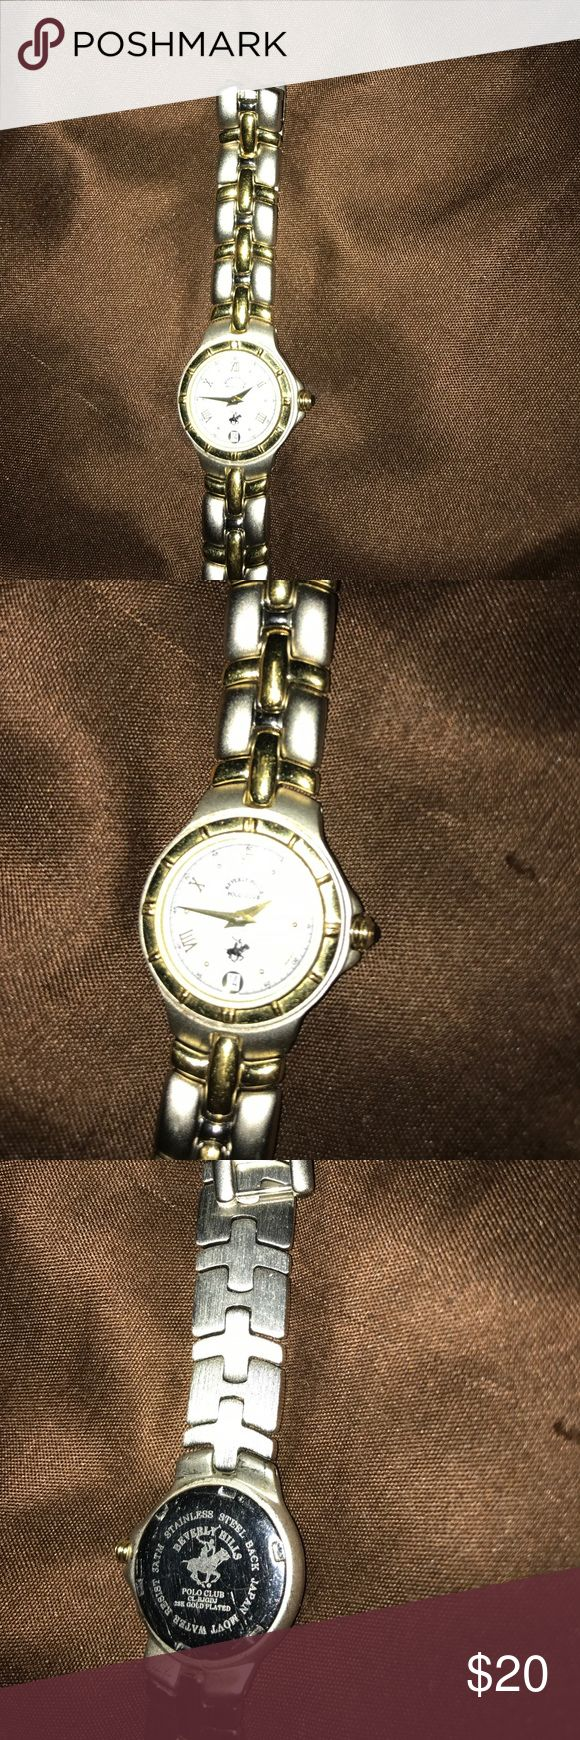 Polo watch by Ralph Lauren Two tone silver and gold ladies polo club watch. Needs battery. Small scratch on face. Polo by Ralph Lauren Accessories Watches